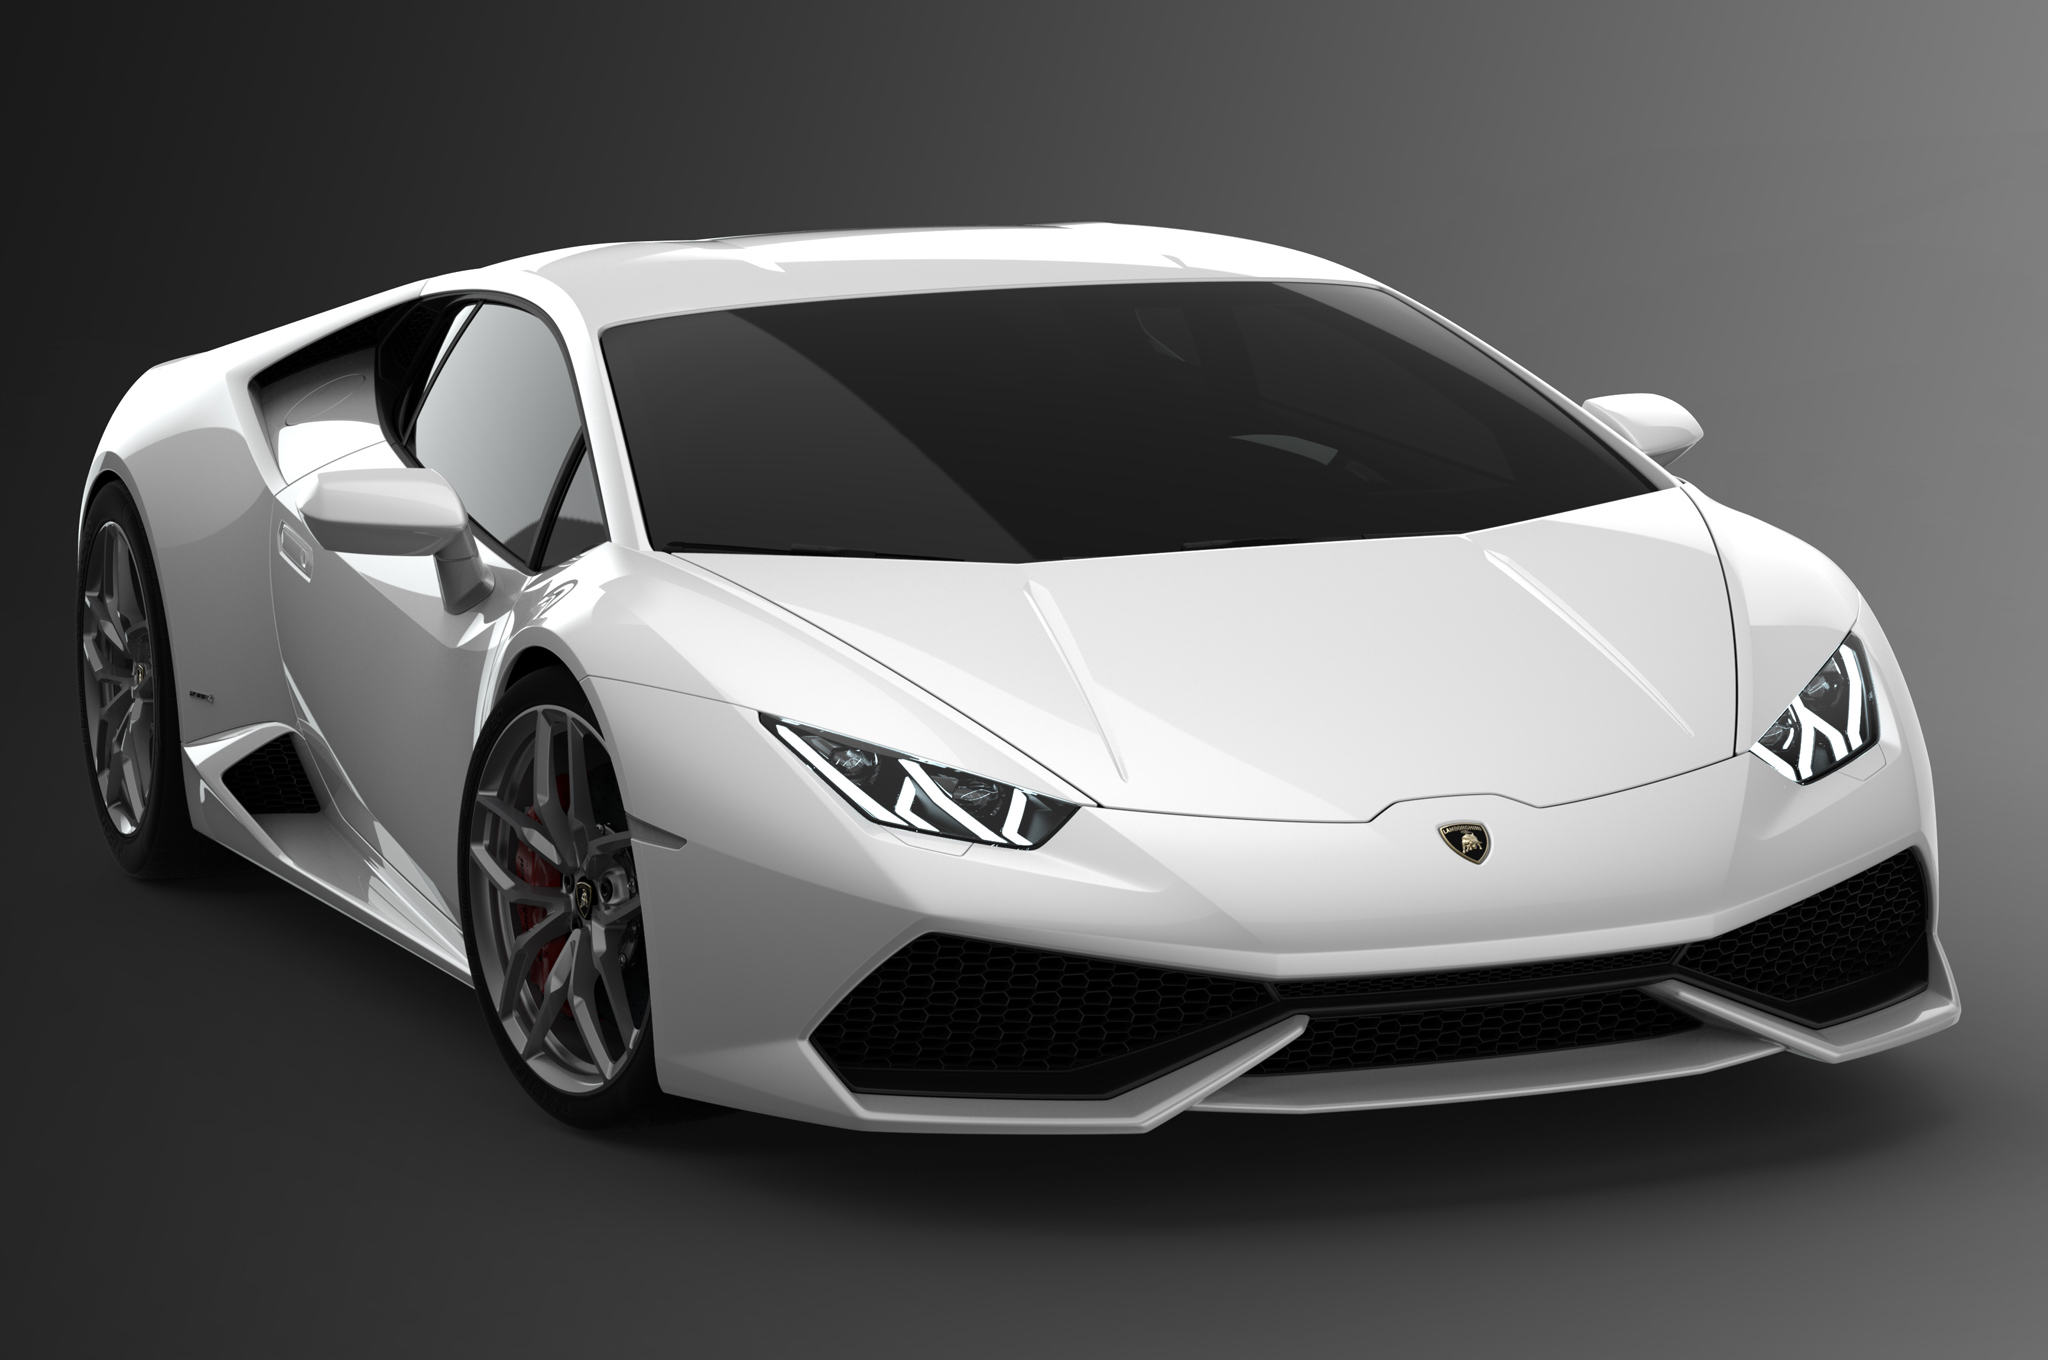 White Lamborghini Super Car 55.72 Kb